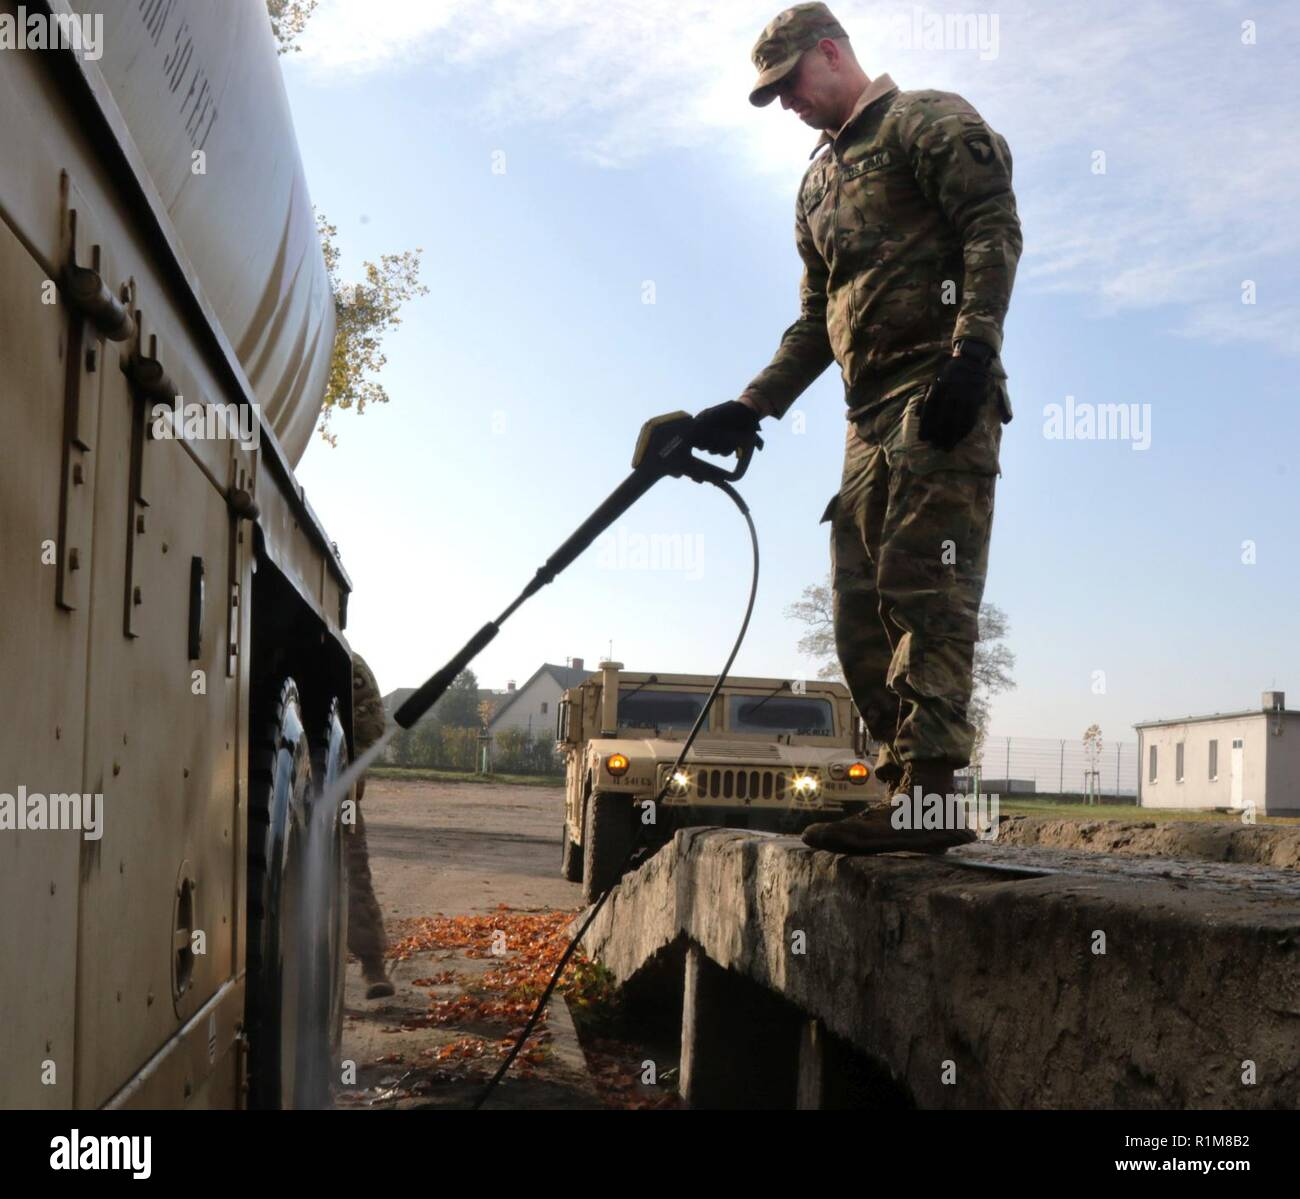 Spc  Lewis Matthinson, a motor transport operator with the